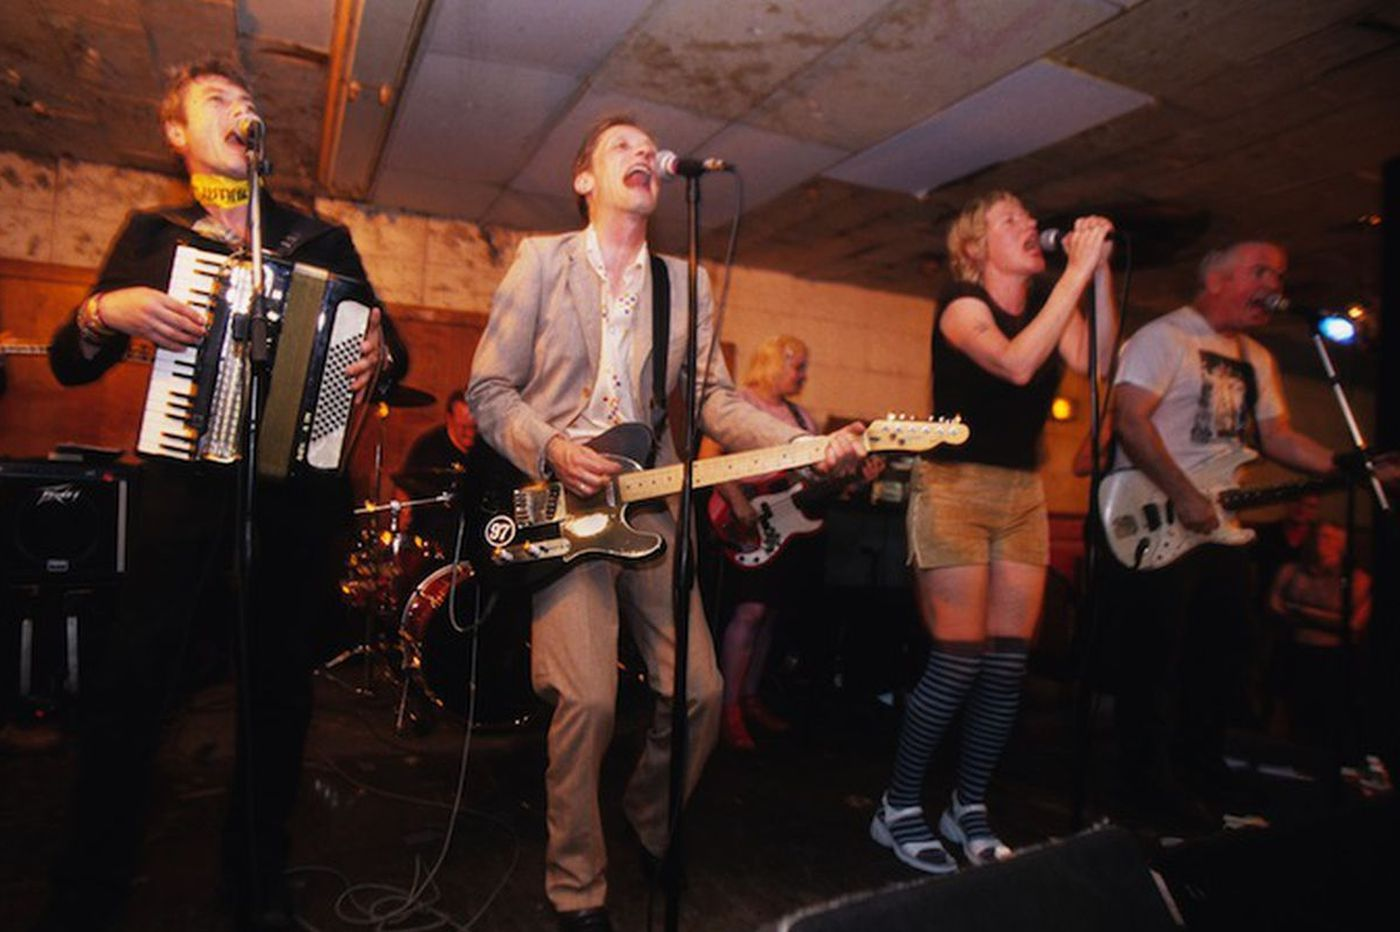 April was the first month I haven't been out to hear live music since I was 16. Time for a retreat with The Mekons. | Dan DeLuca